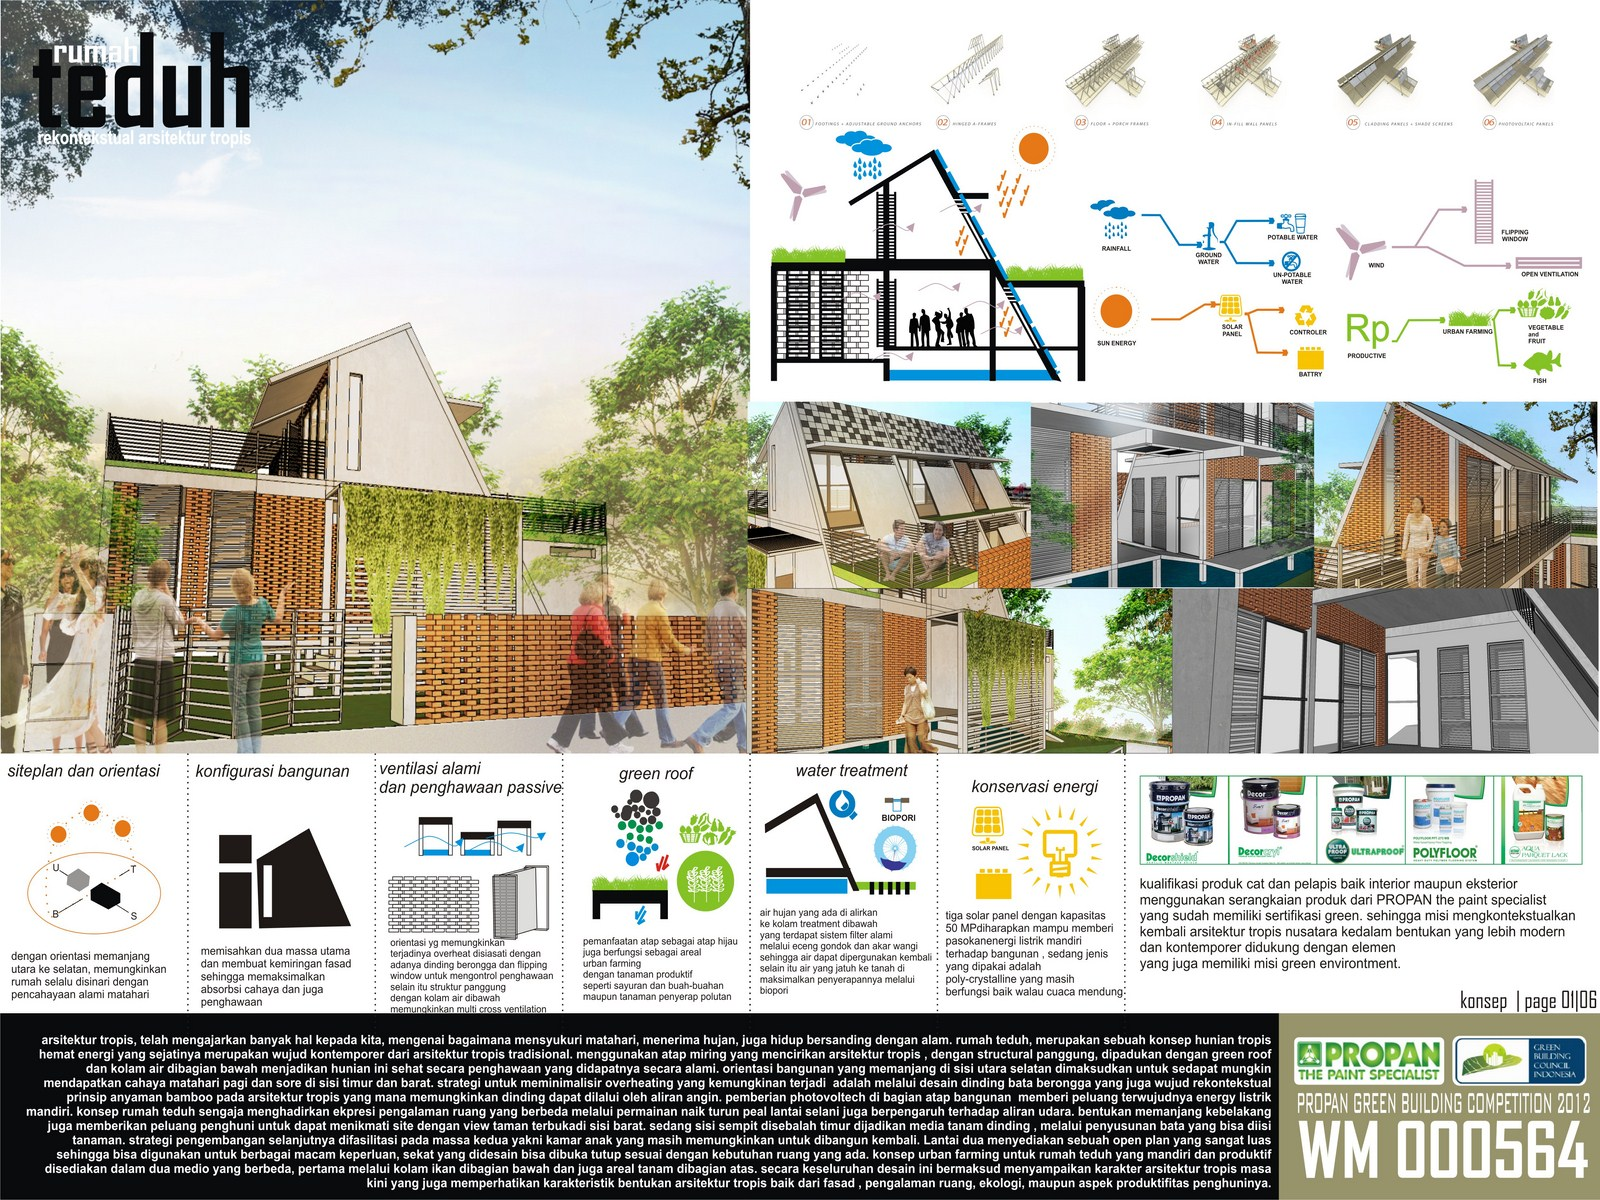 PROPAN Green Building Competition 2012 by Muhammad Nelza Iqbal at